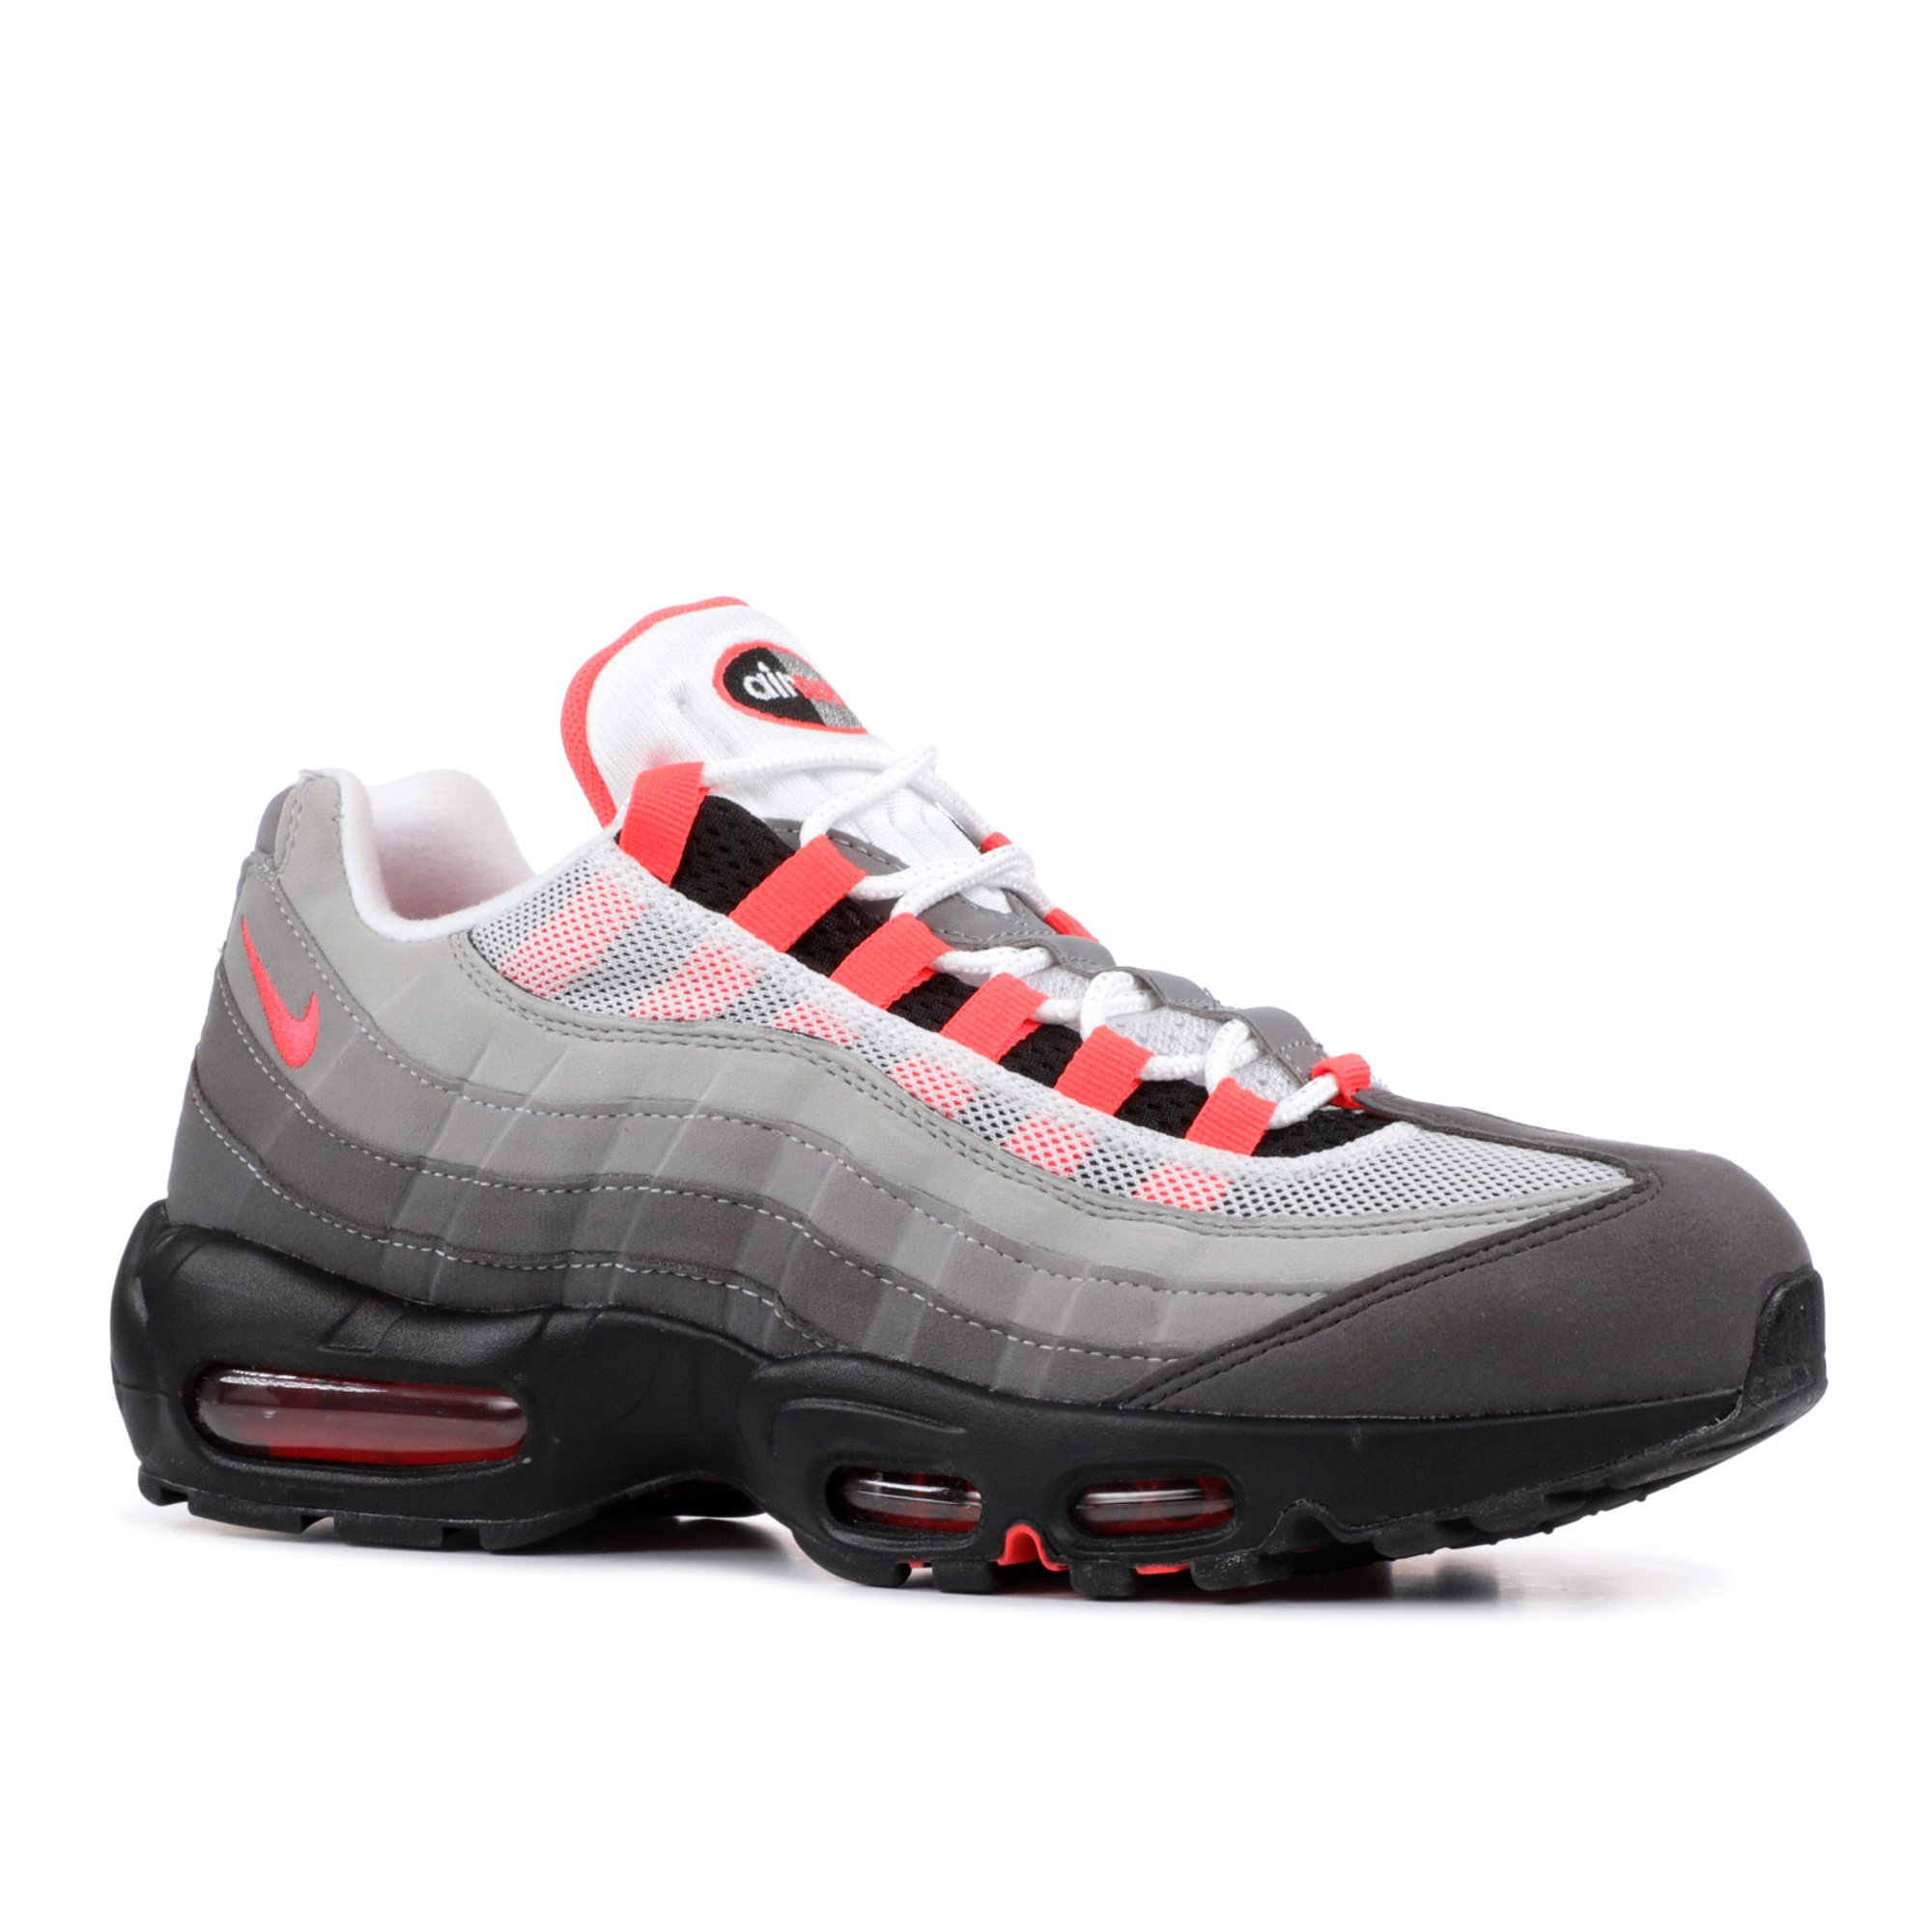 Calle coser Grapa  Nike - Men - Air Max 95 Og 'Solar Red' - At2865-100 - Size 10 | Walmart  Canada